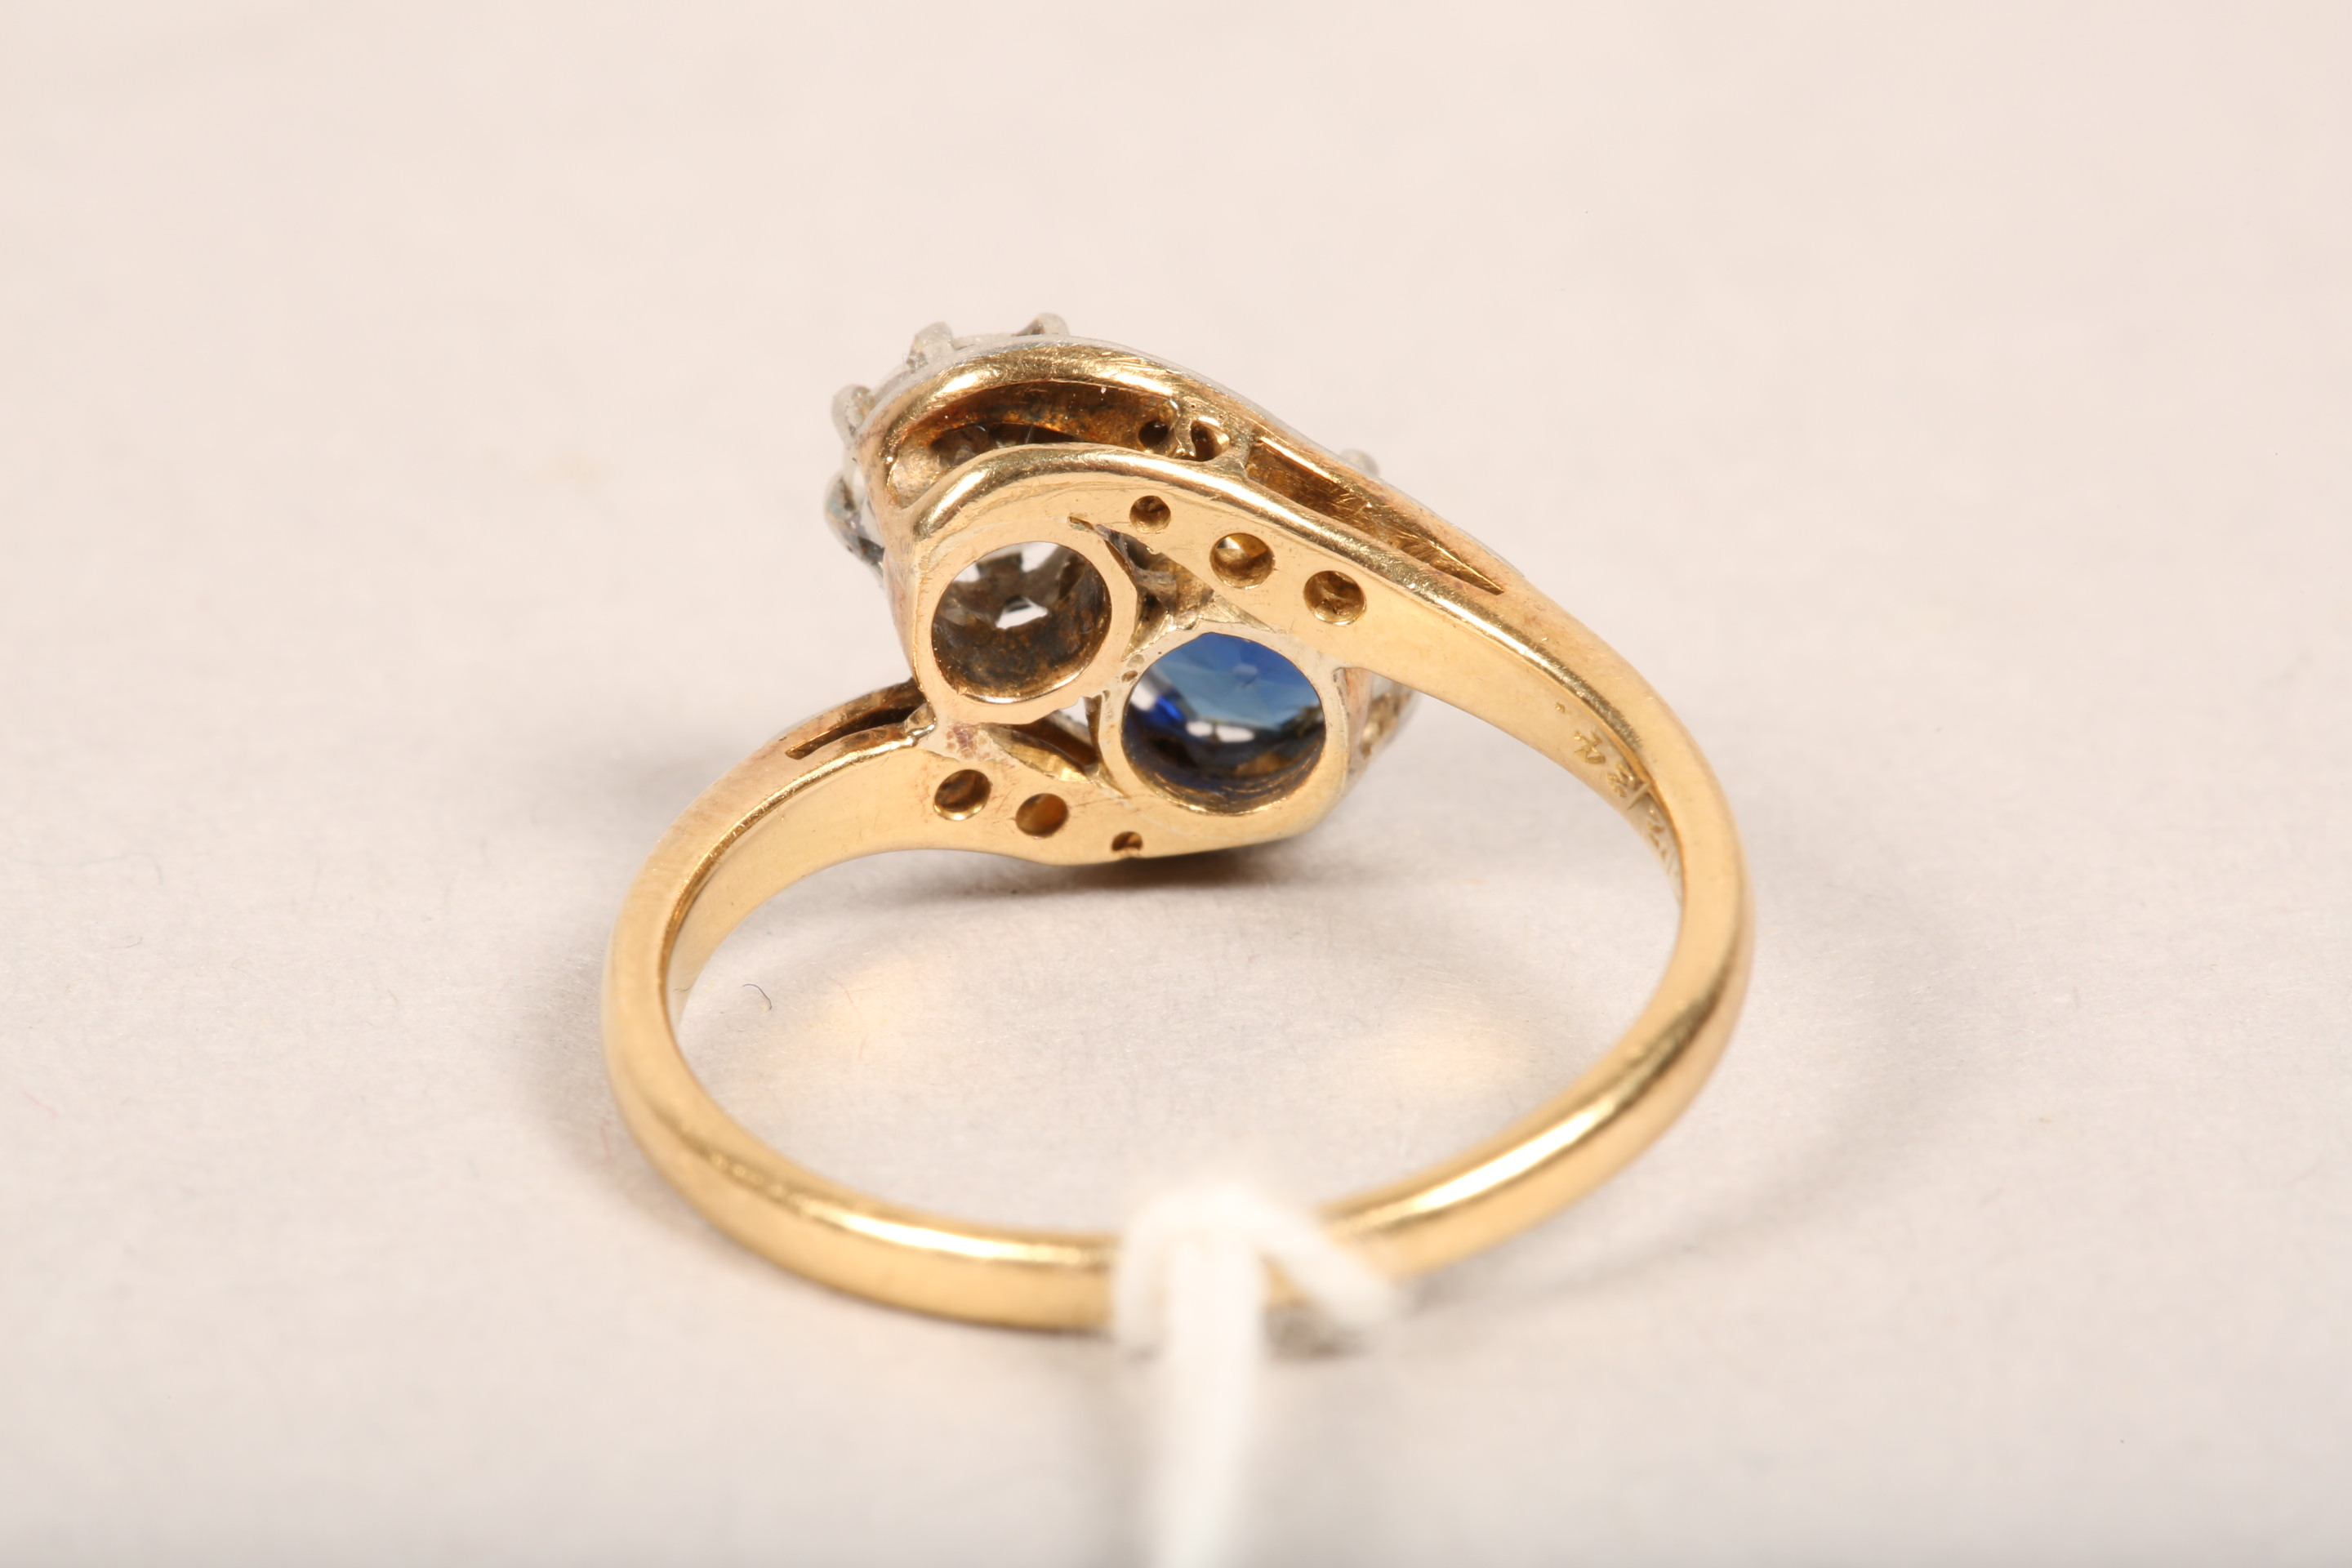 Ladies 18 carat gold diamond and sapphire ring, 0.33 diamond and 0.5 sapphire in twist setting, - Image 3 of 8